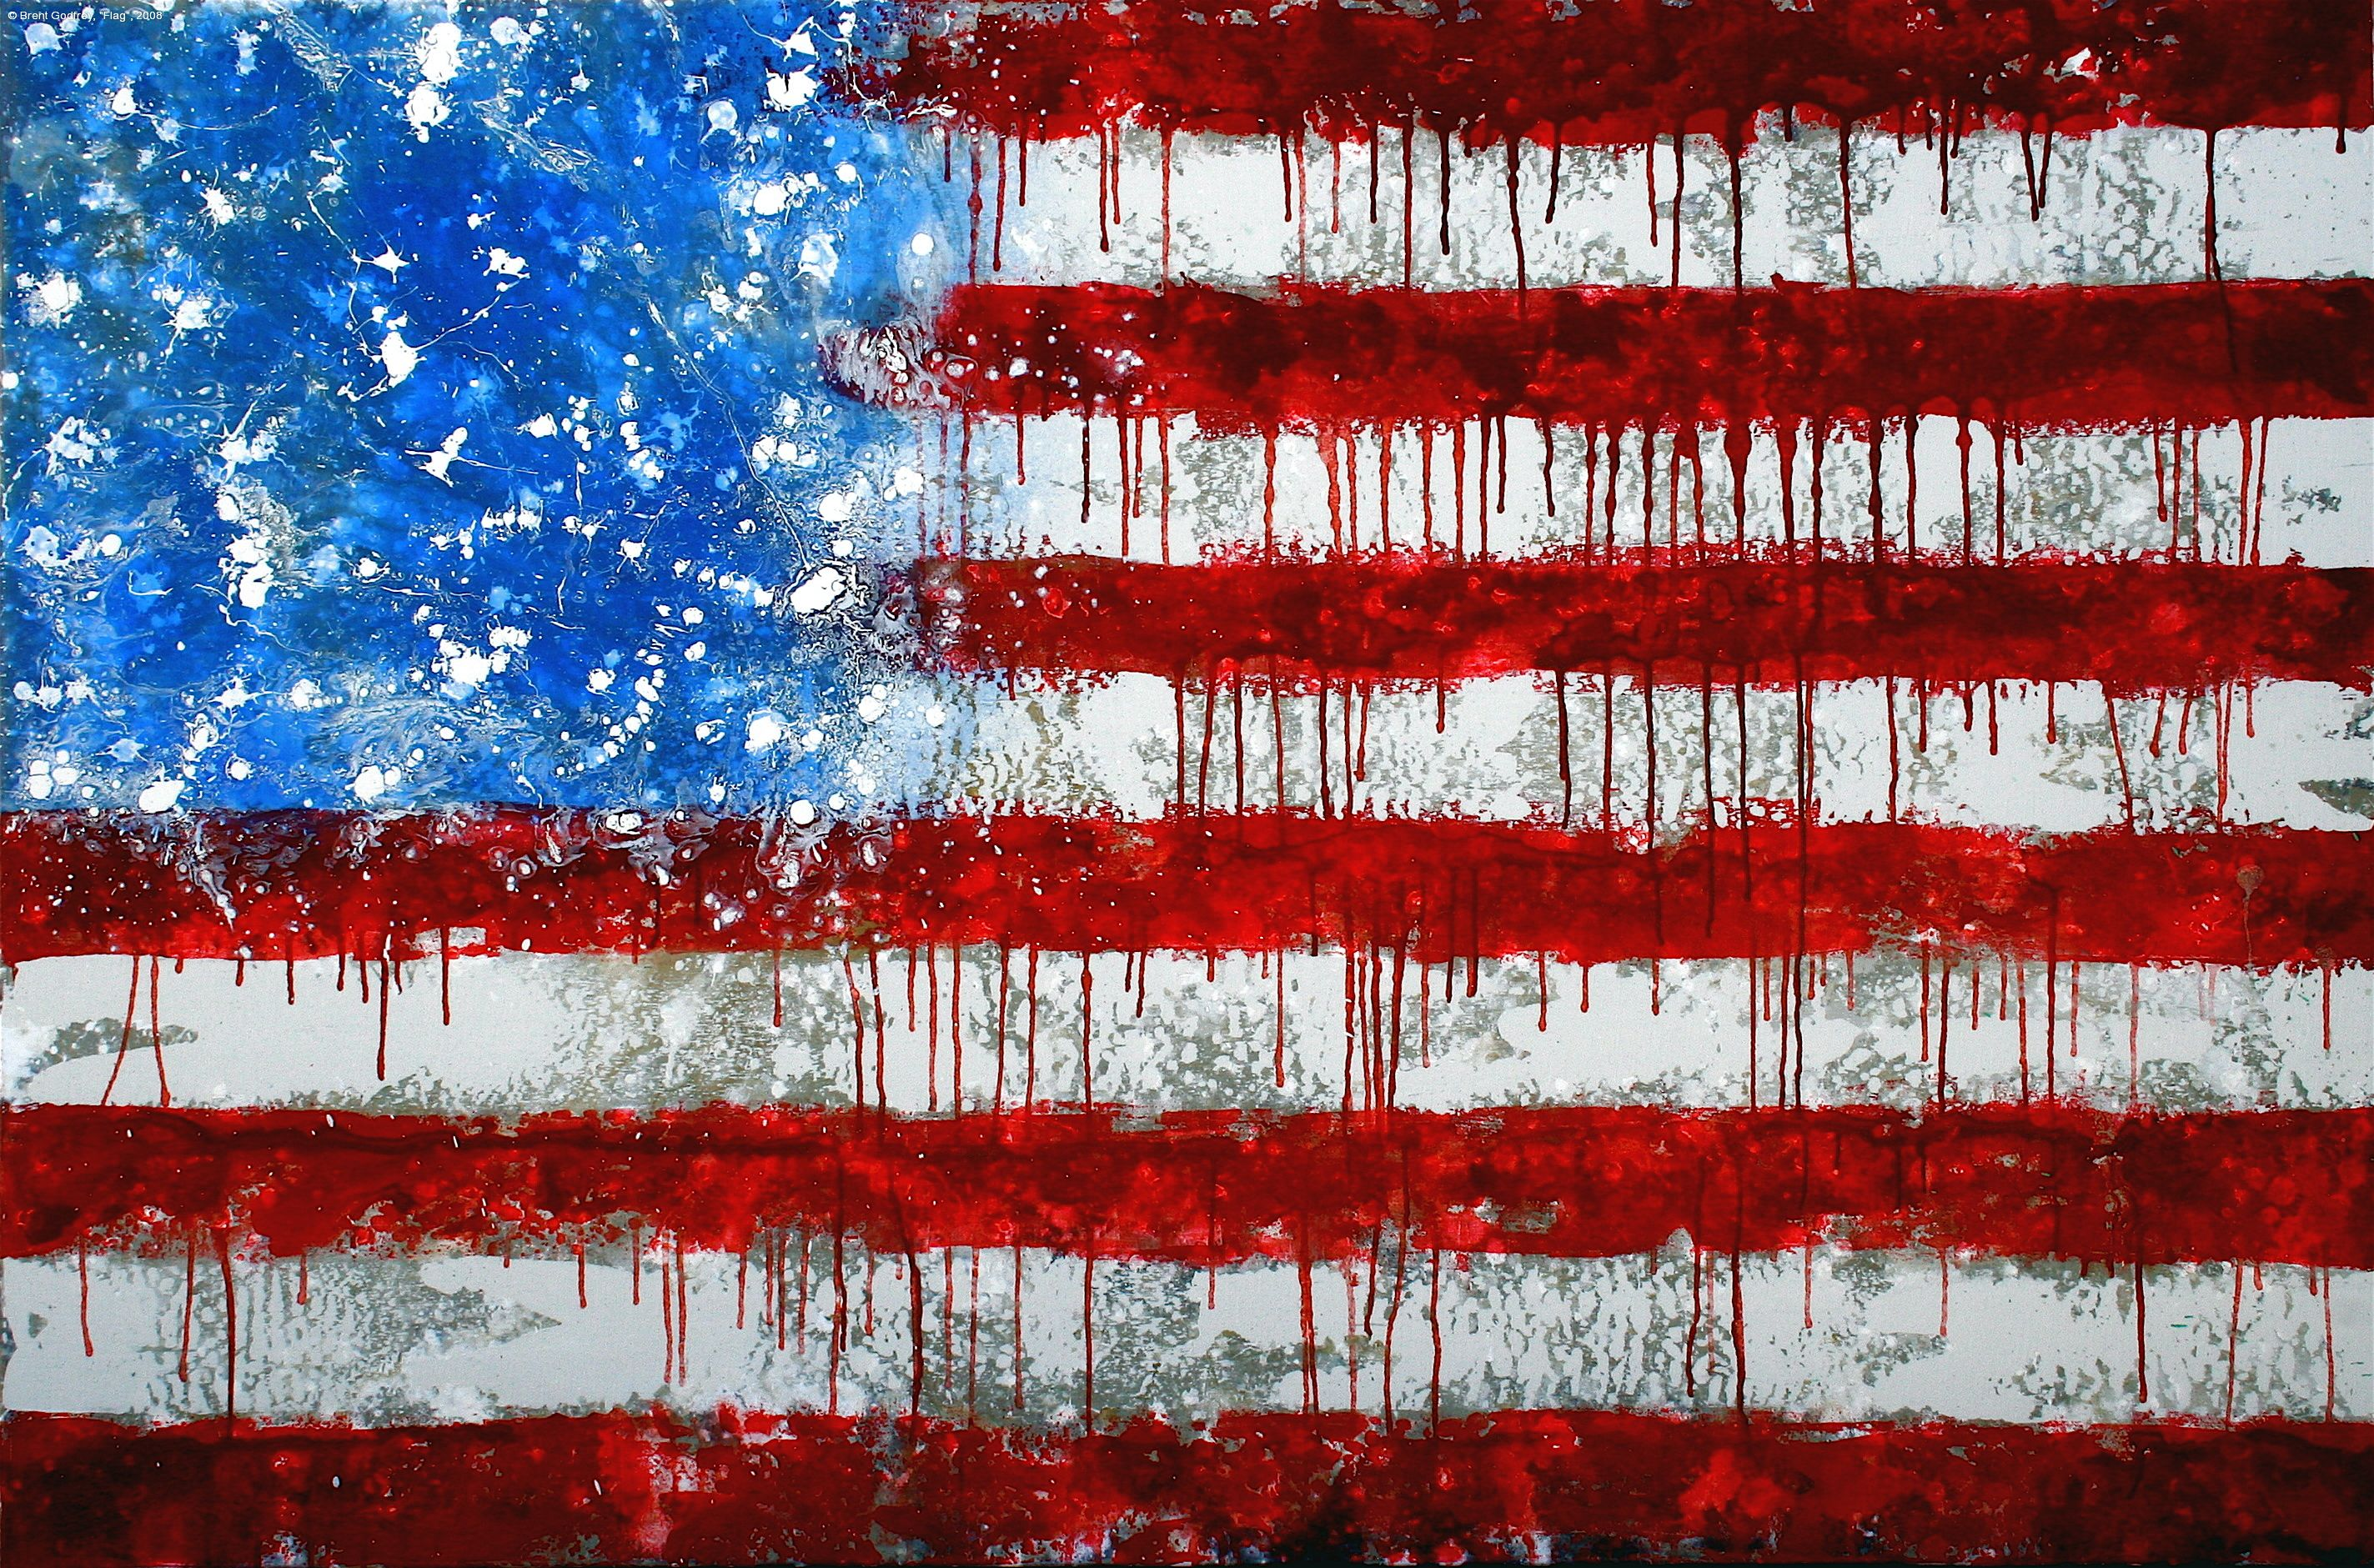 Hd wallpaper usa - Usa United States United States Of America America Flag Art Wallpaper